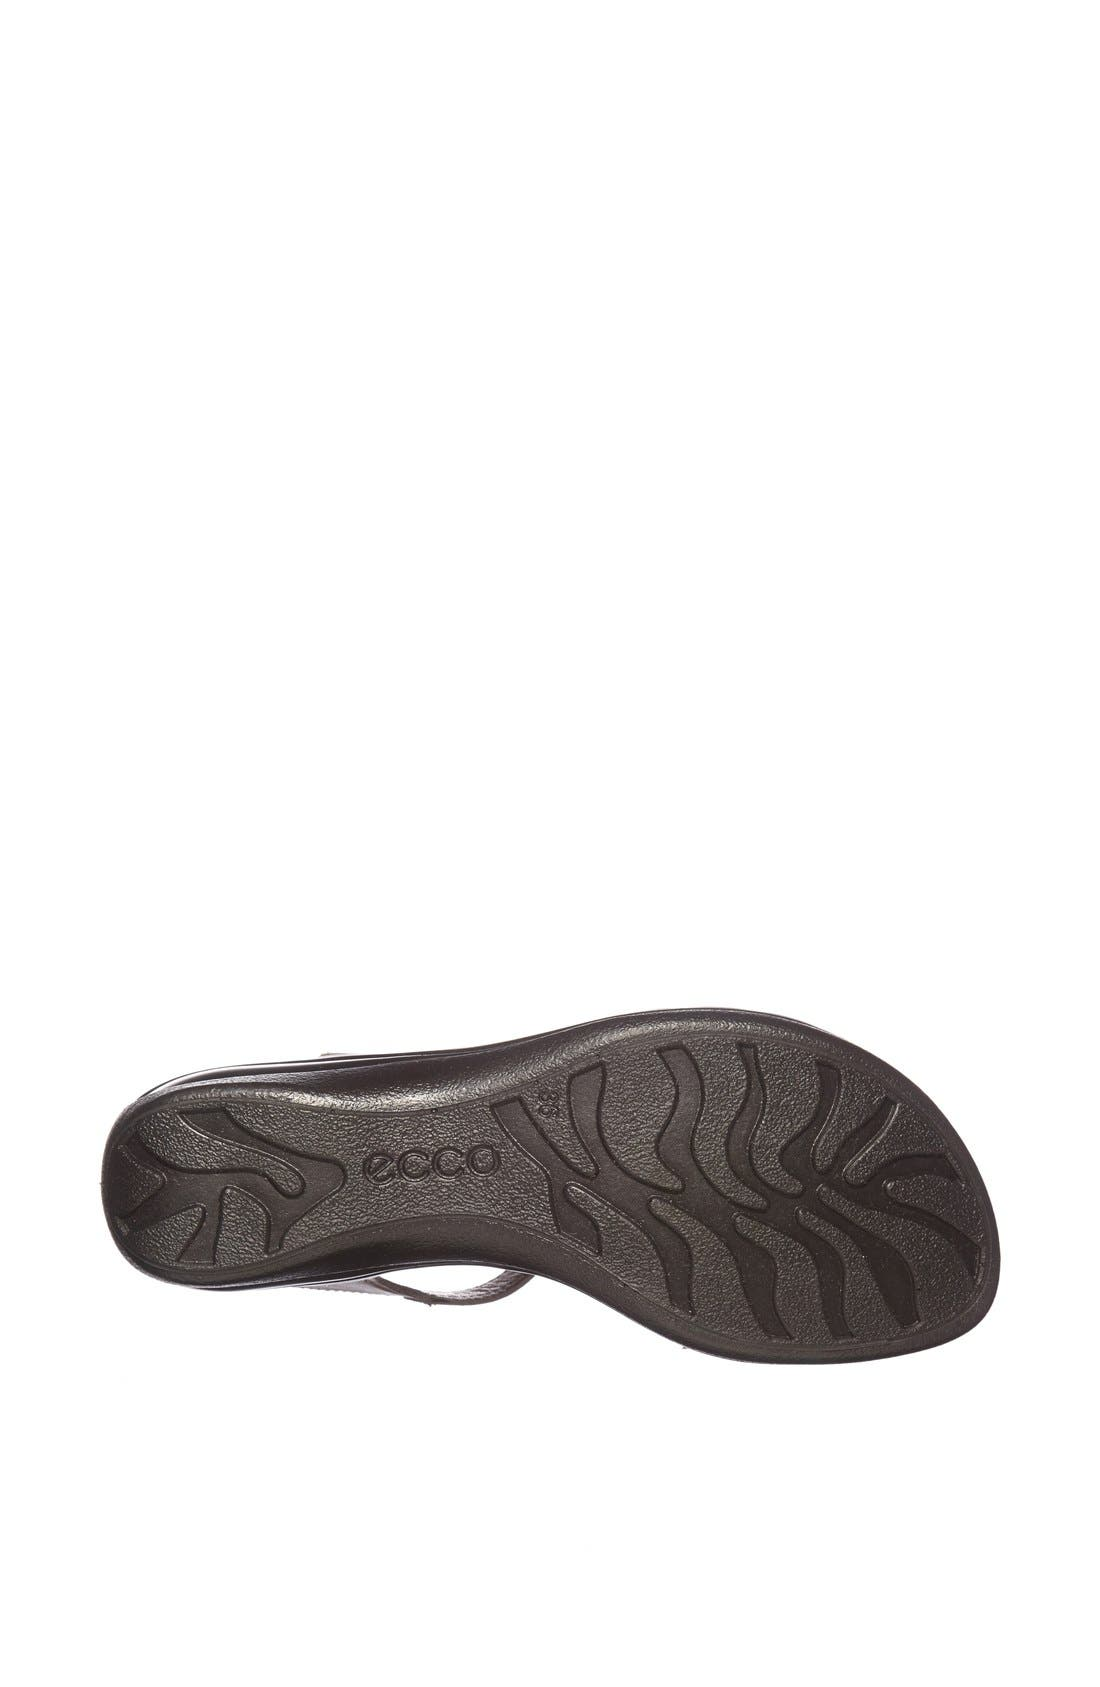 Alternate Image 4  - ECCO 'Sensata' Sandal (Regular Retail Price: $119.95)